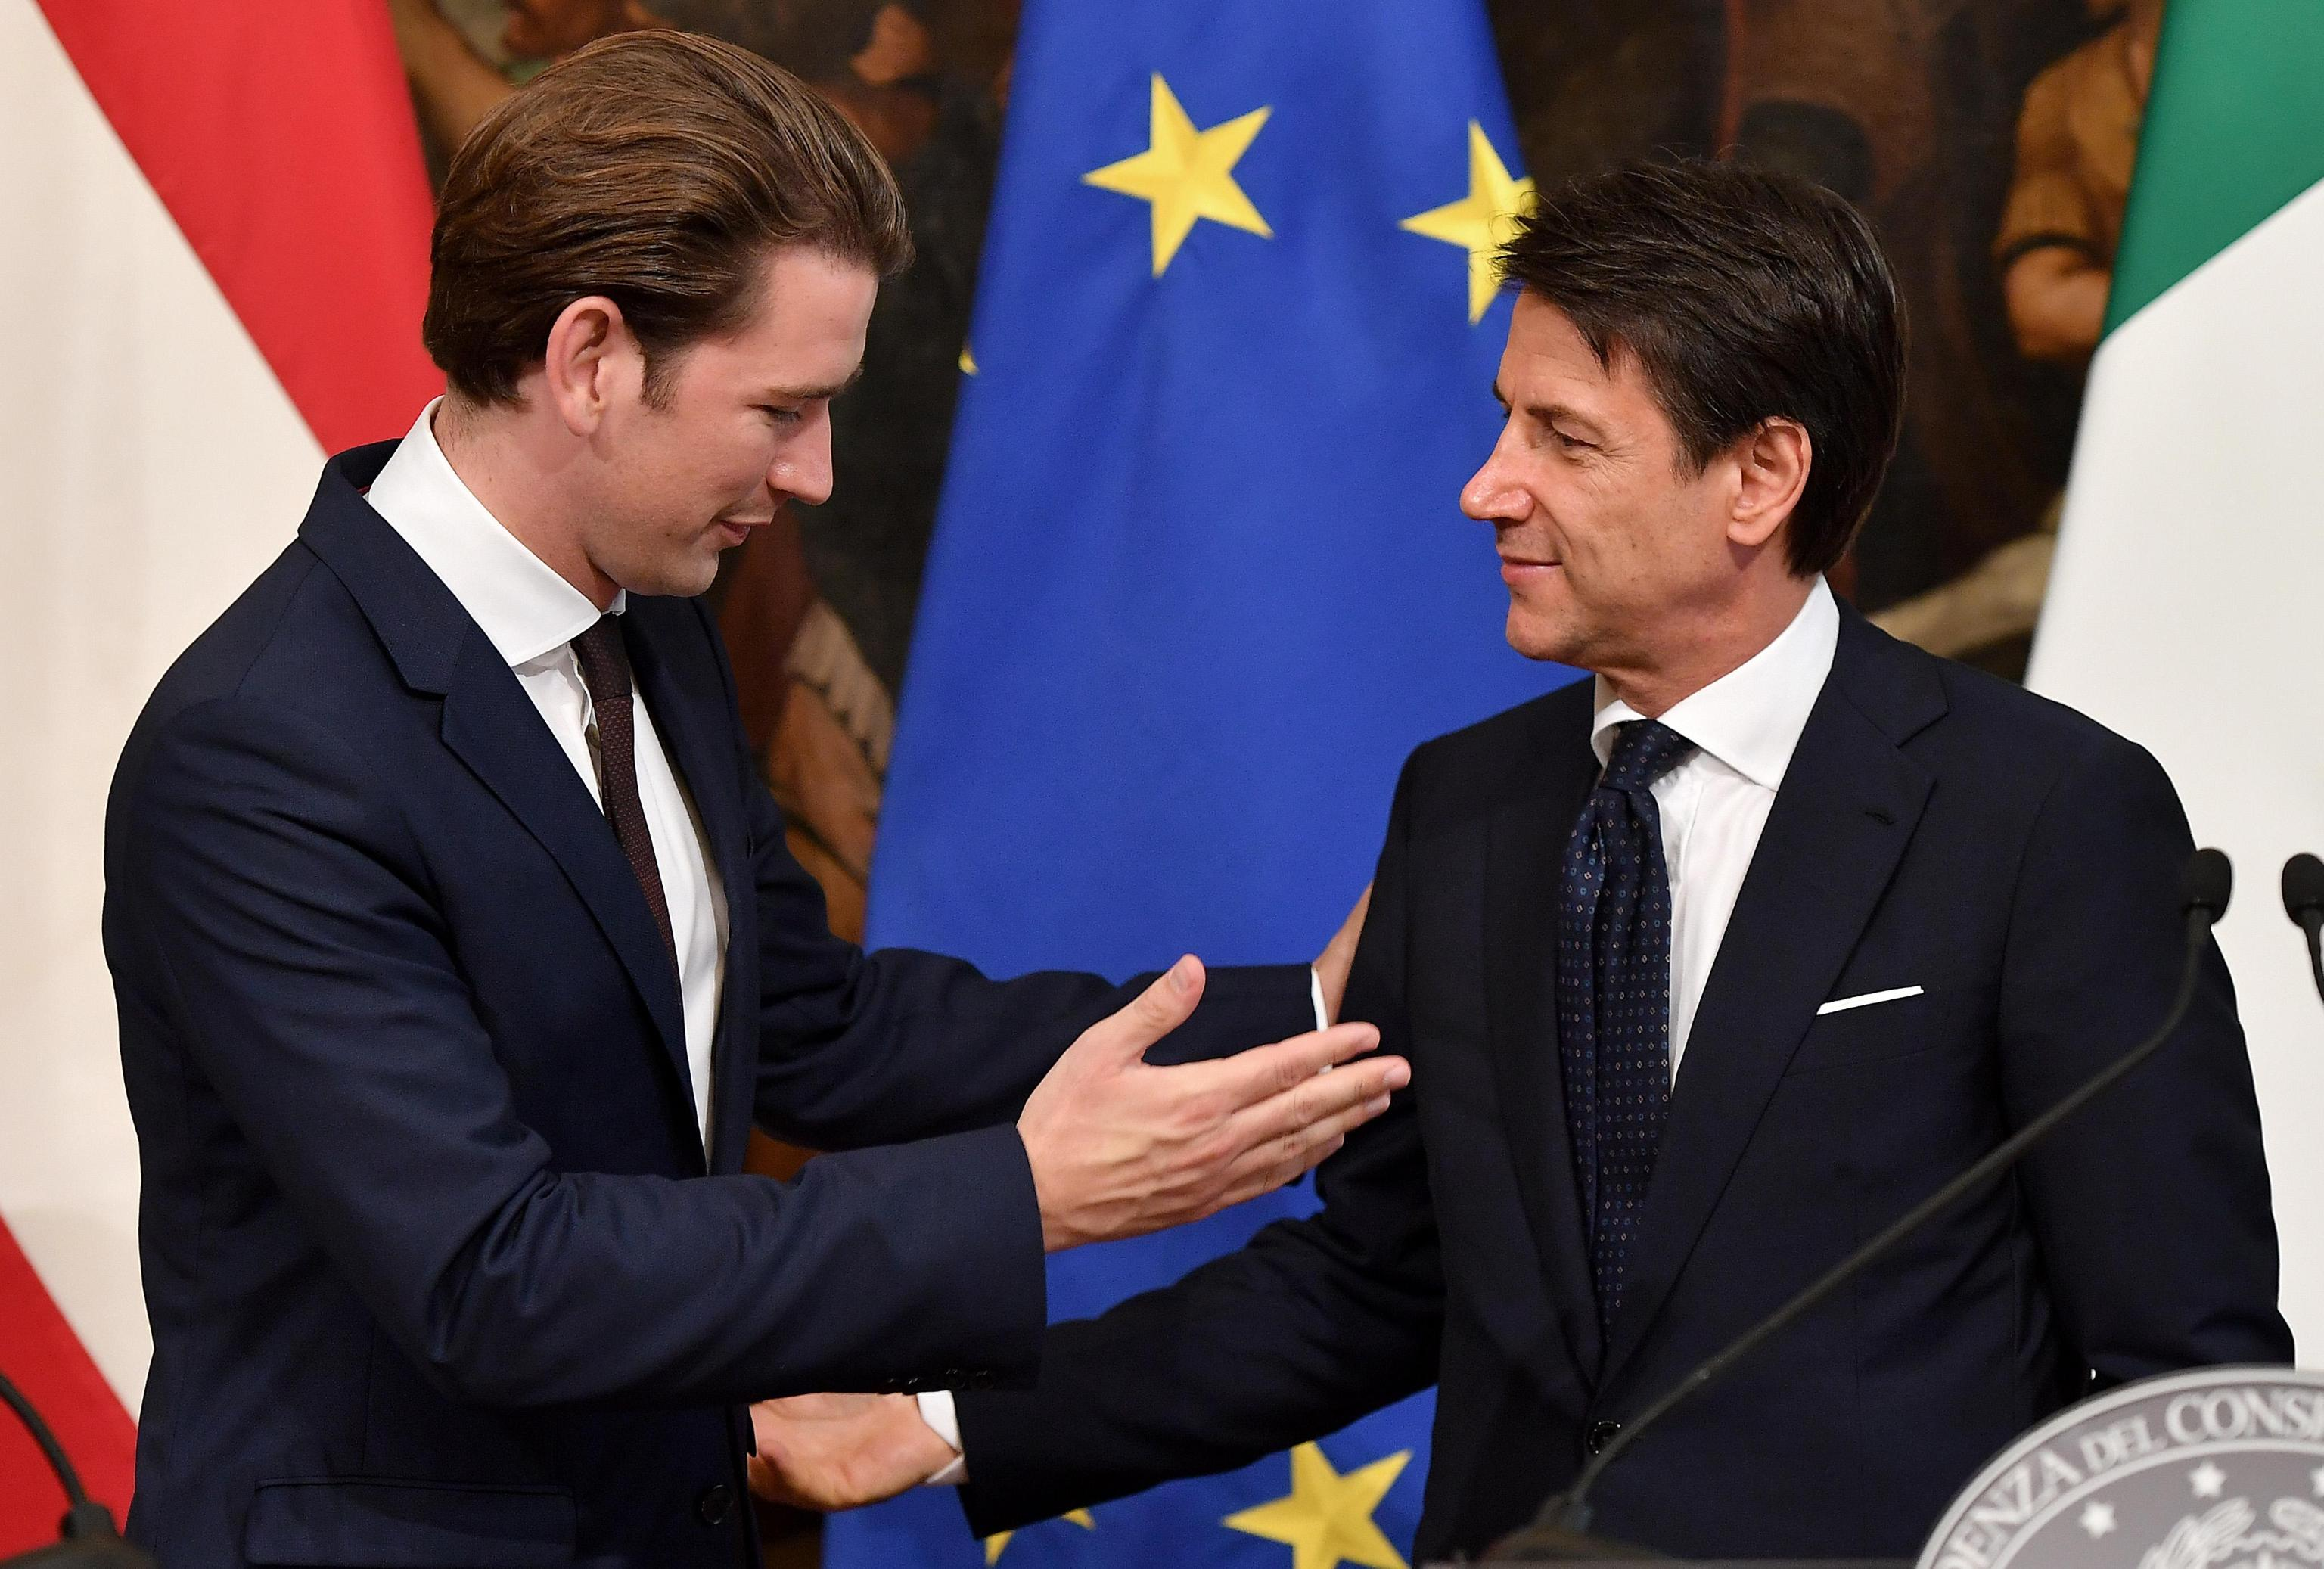 Austrian Chancellor Kurz says Commission must reject Italian budget